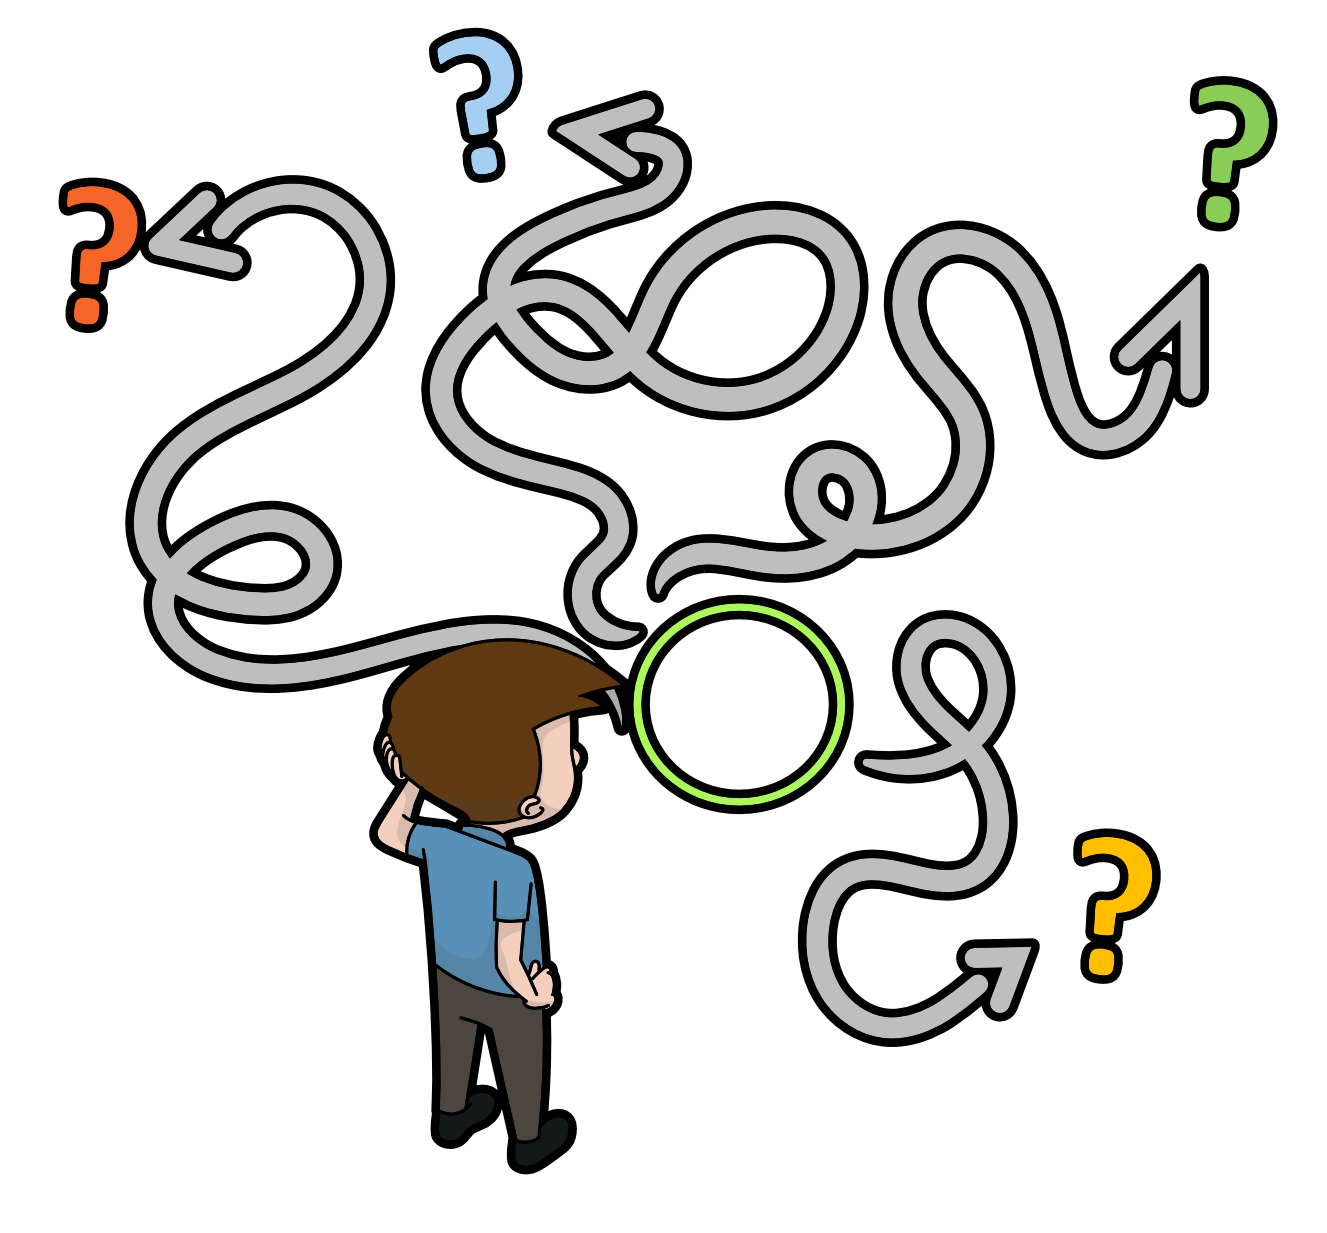 A boy looking at interconnected arrows leading to different endpoints in confusion.